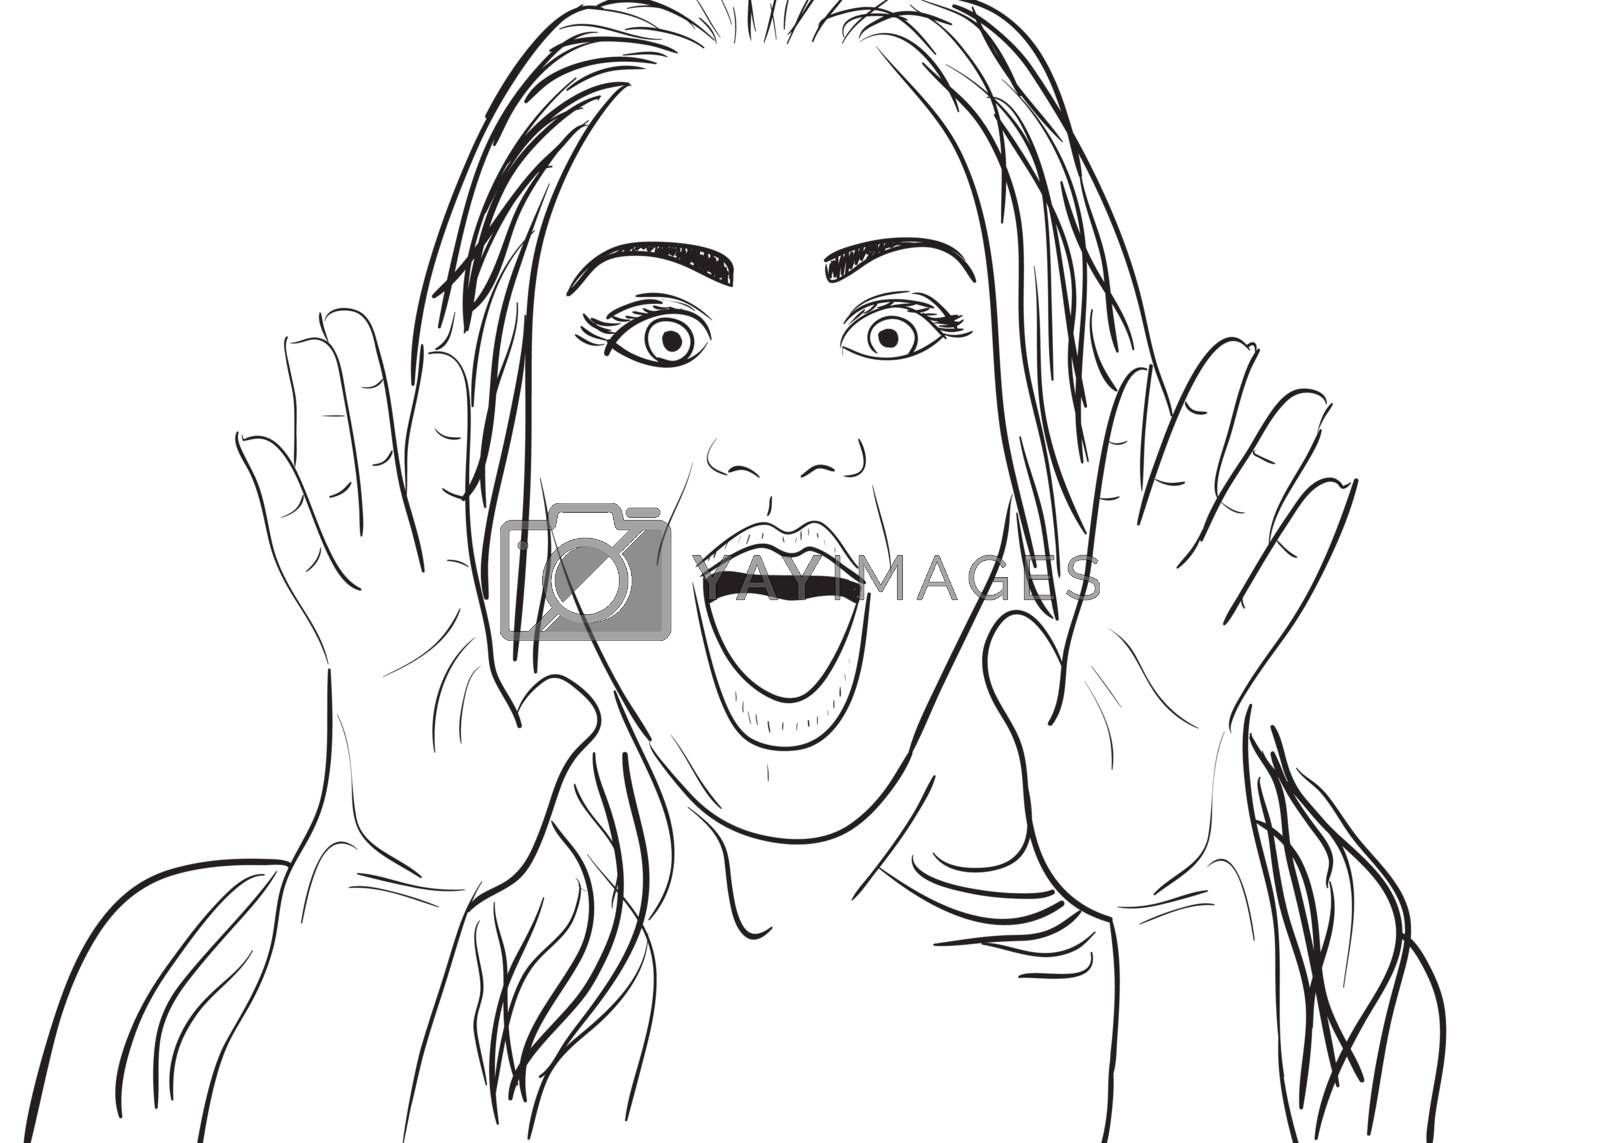 A cartoon vector drawing of a surprised or amazed woman.